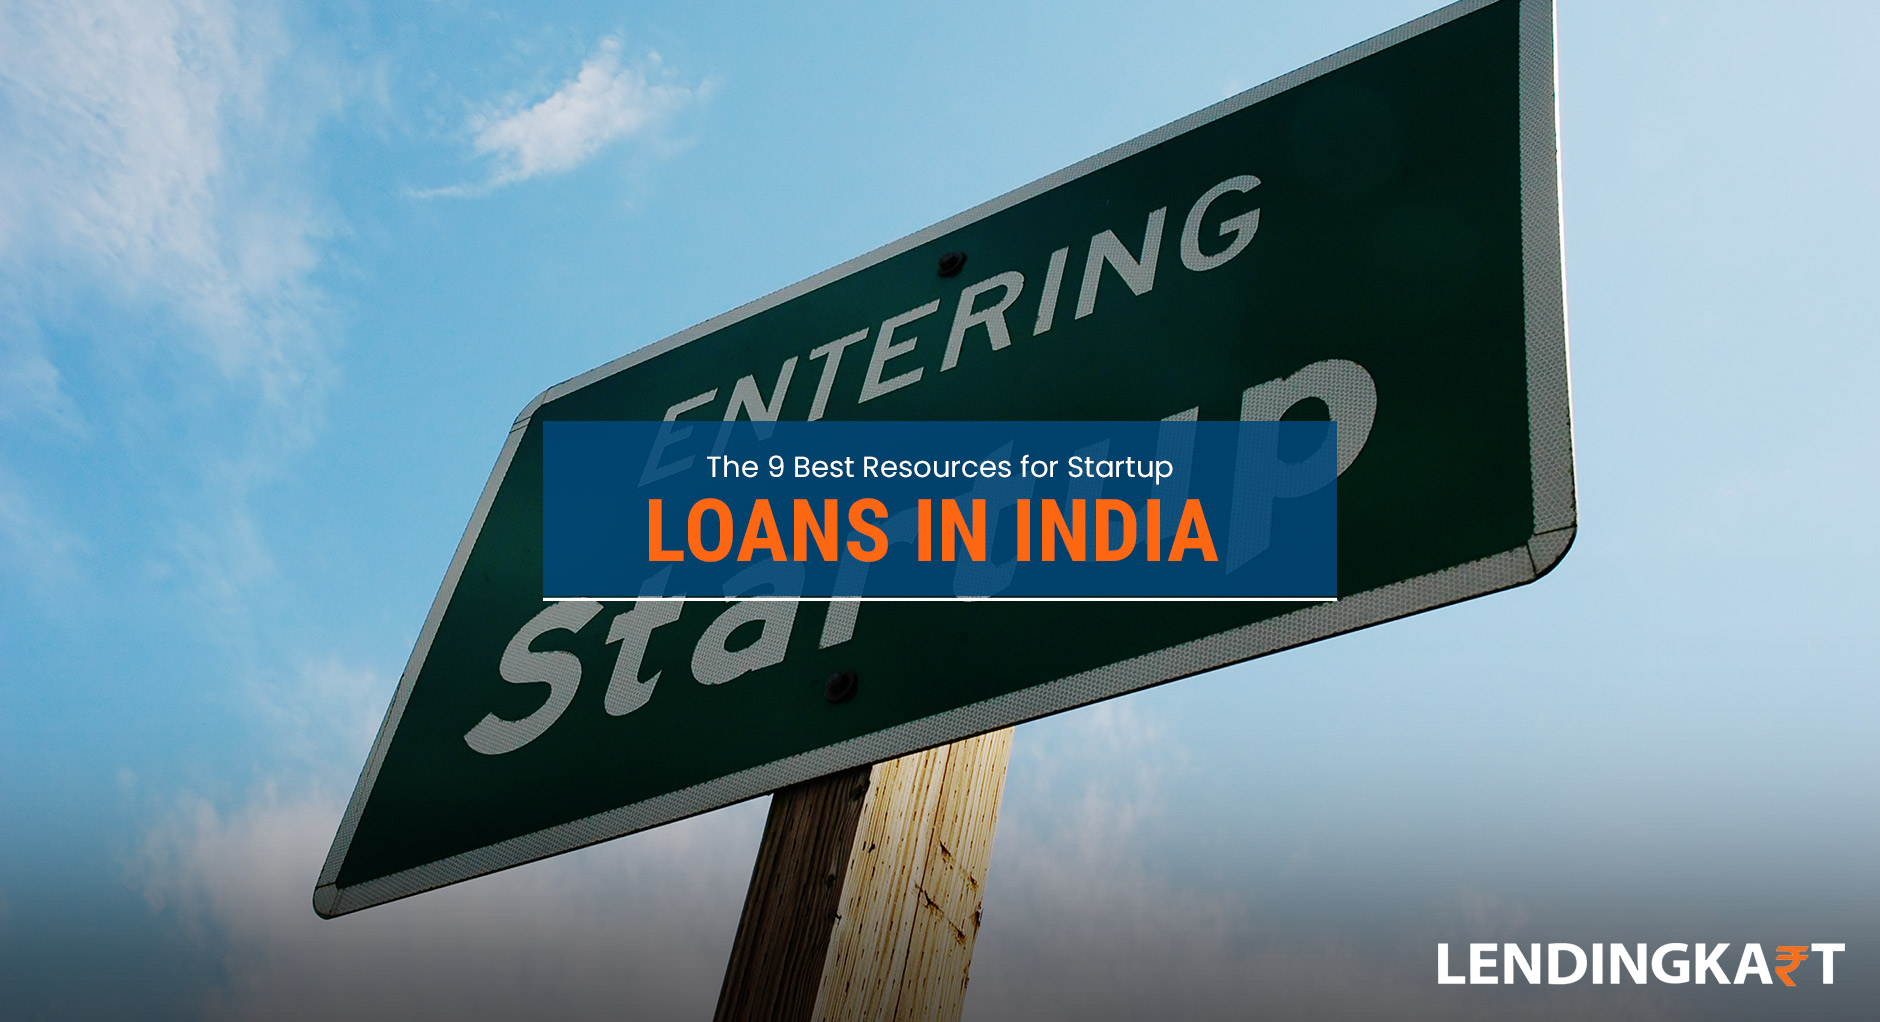 The 9 Best Resources for Startup Loans in India